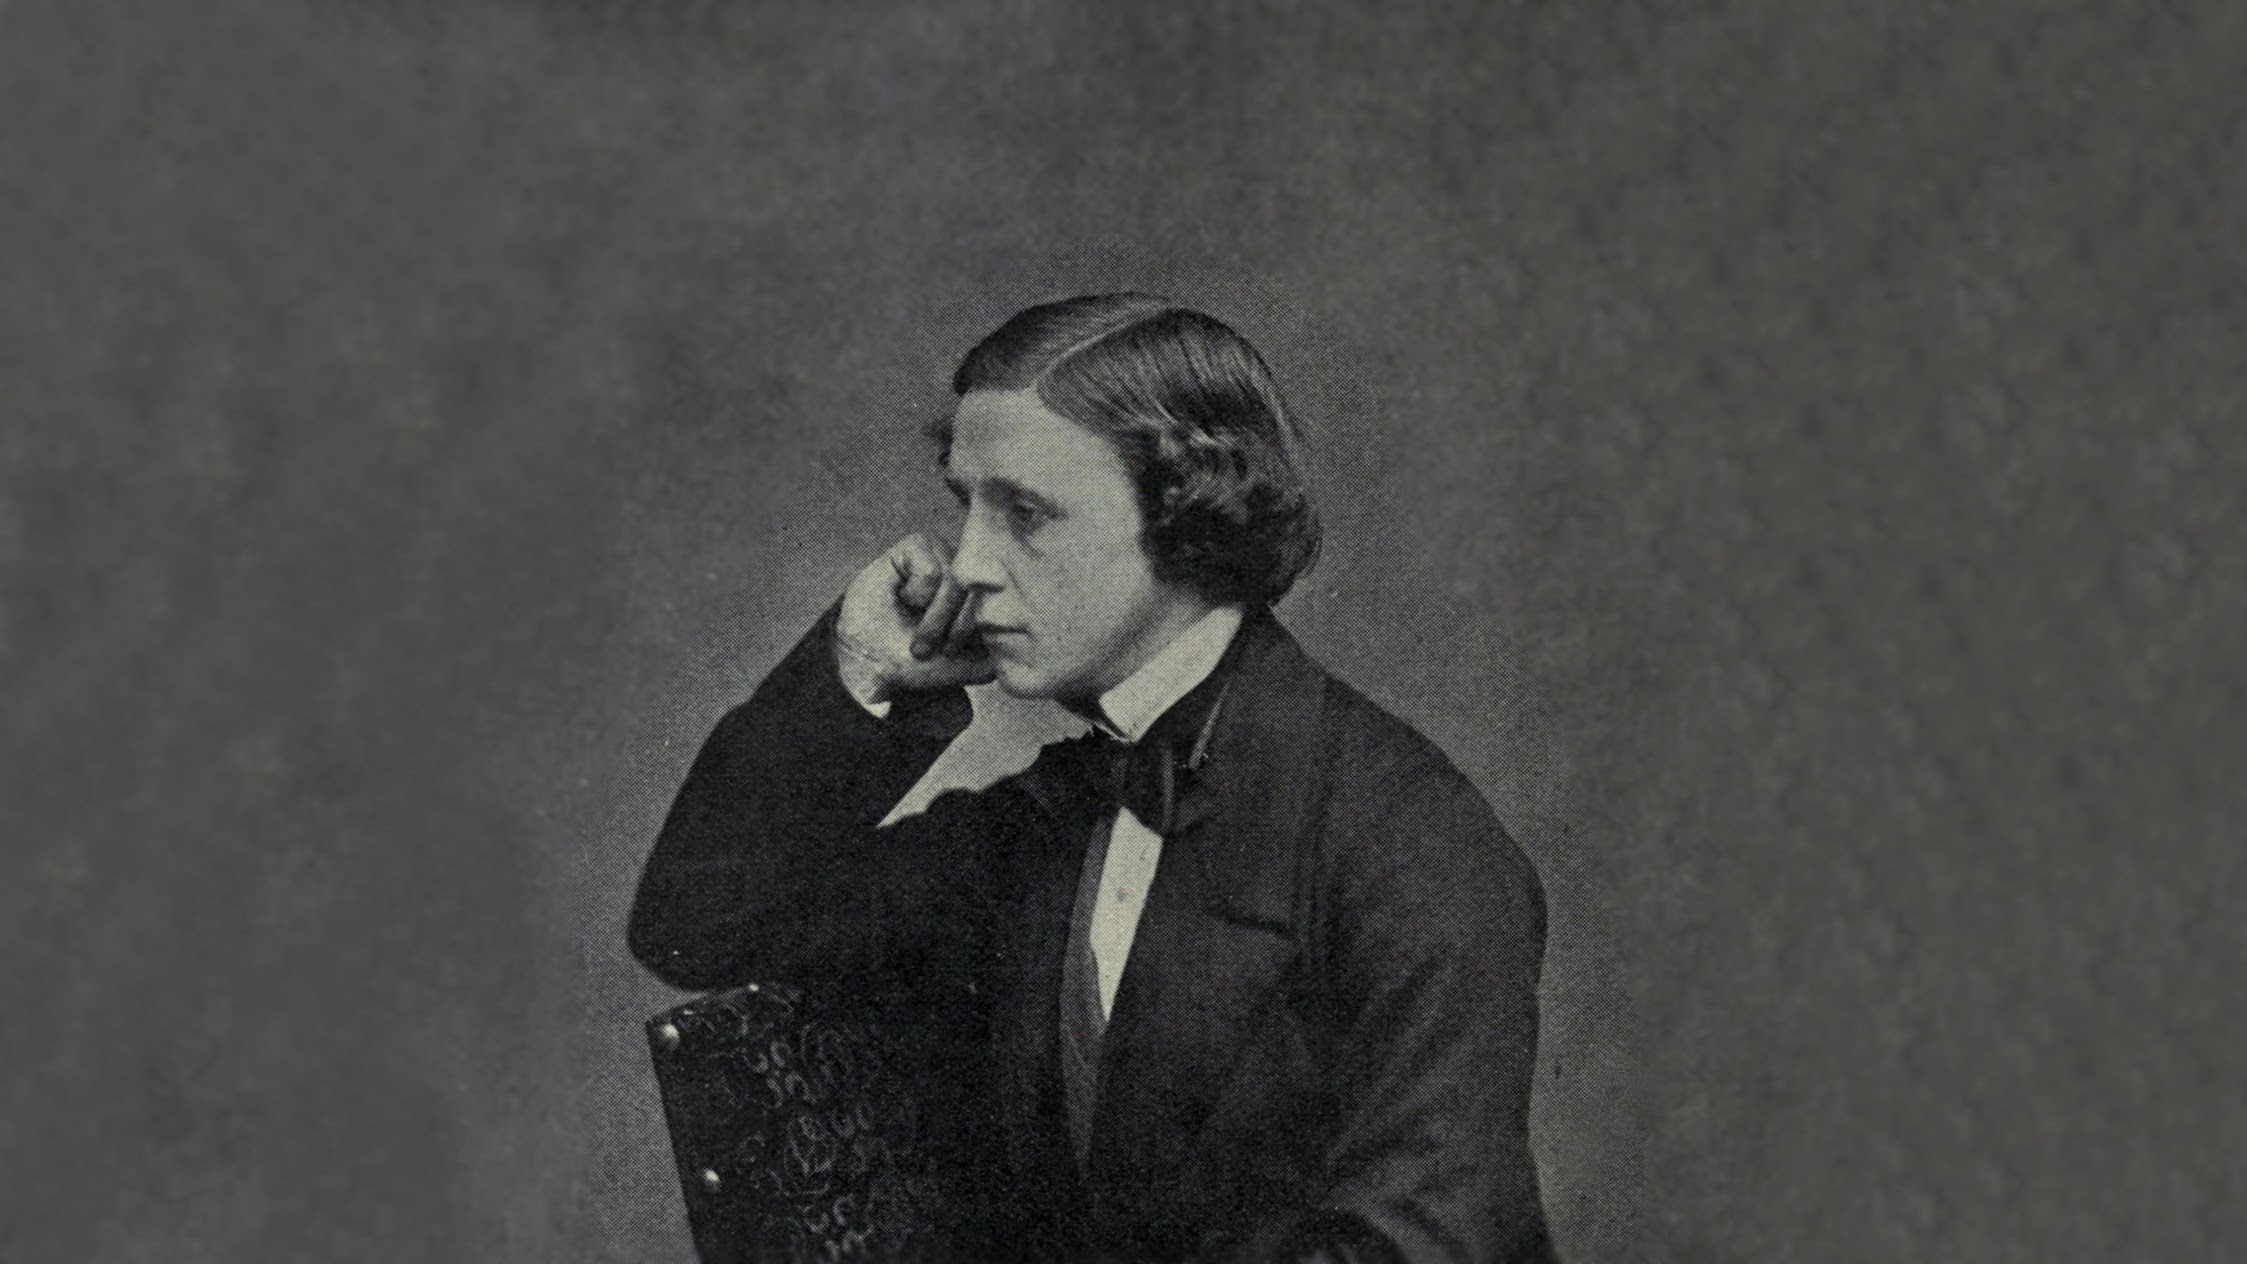 a biography of the famous nonsense writer lewis carroll A beautifully illustrated edition of lewis carroll's nonsense verse: most people are familiar with the verse from alice through the looking-glass, for example the .